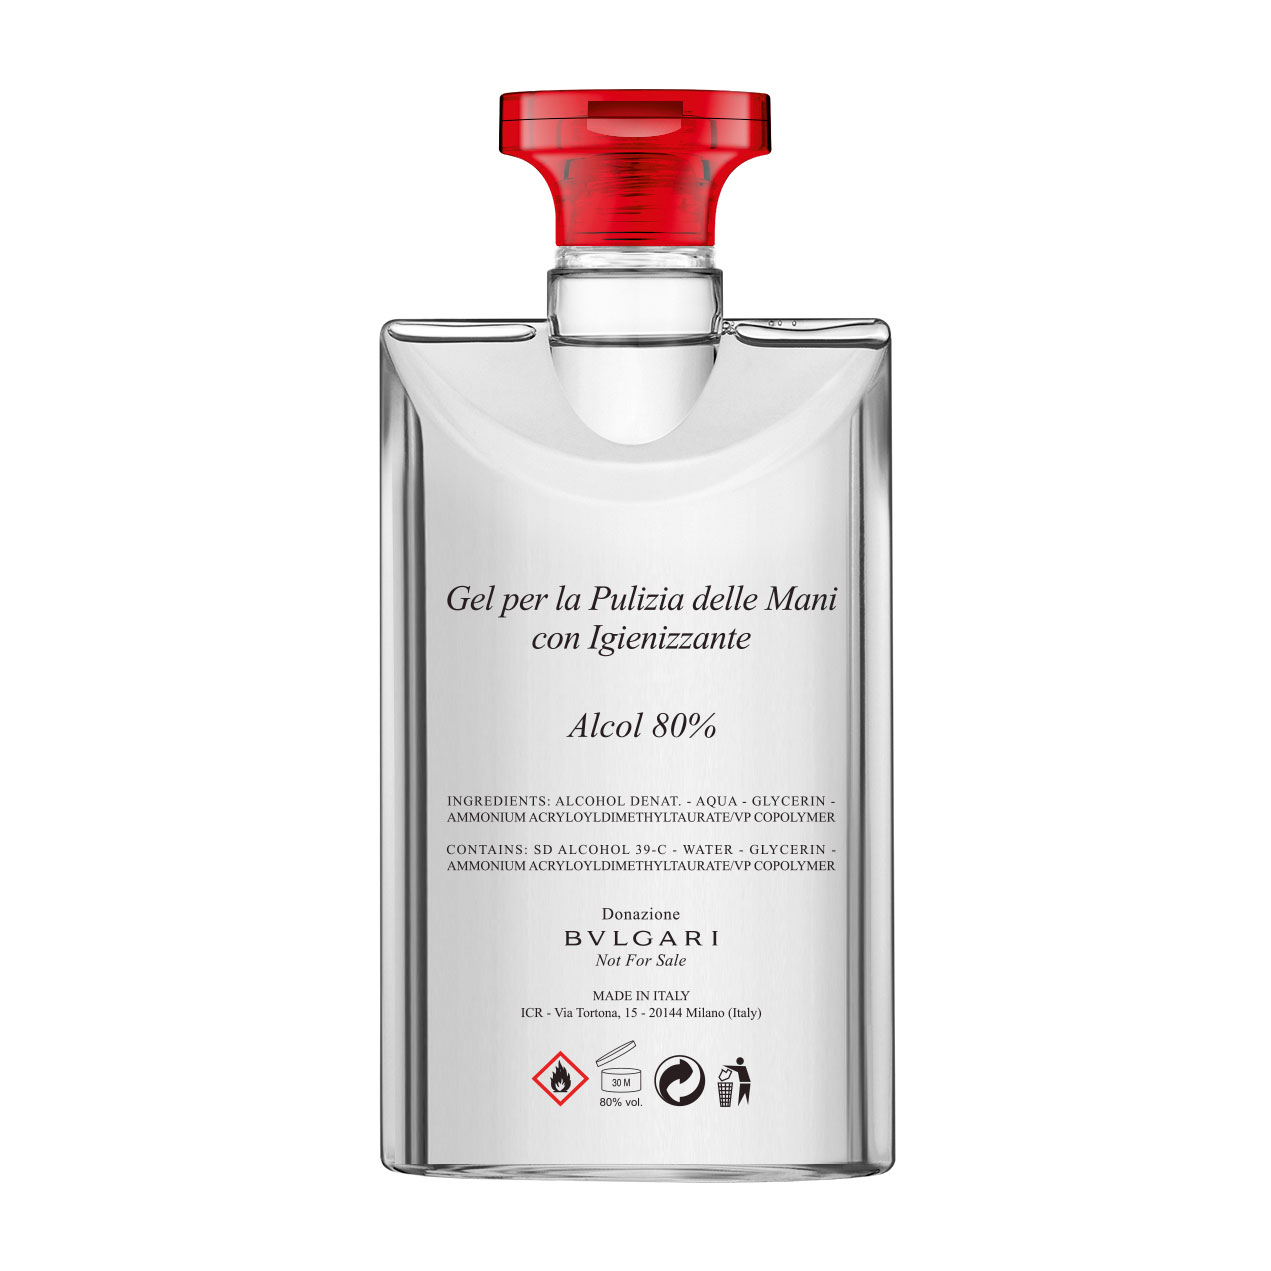 Bvlgari's hand sanitizer that its fragrance manufacturing partner, ICR, has developed to supply affected regions